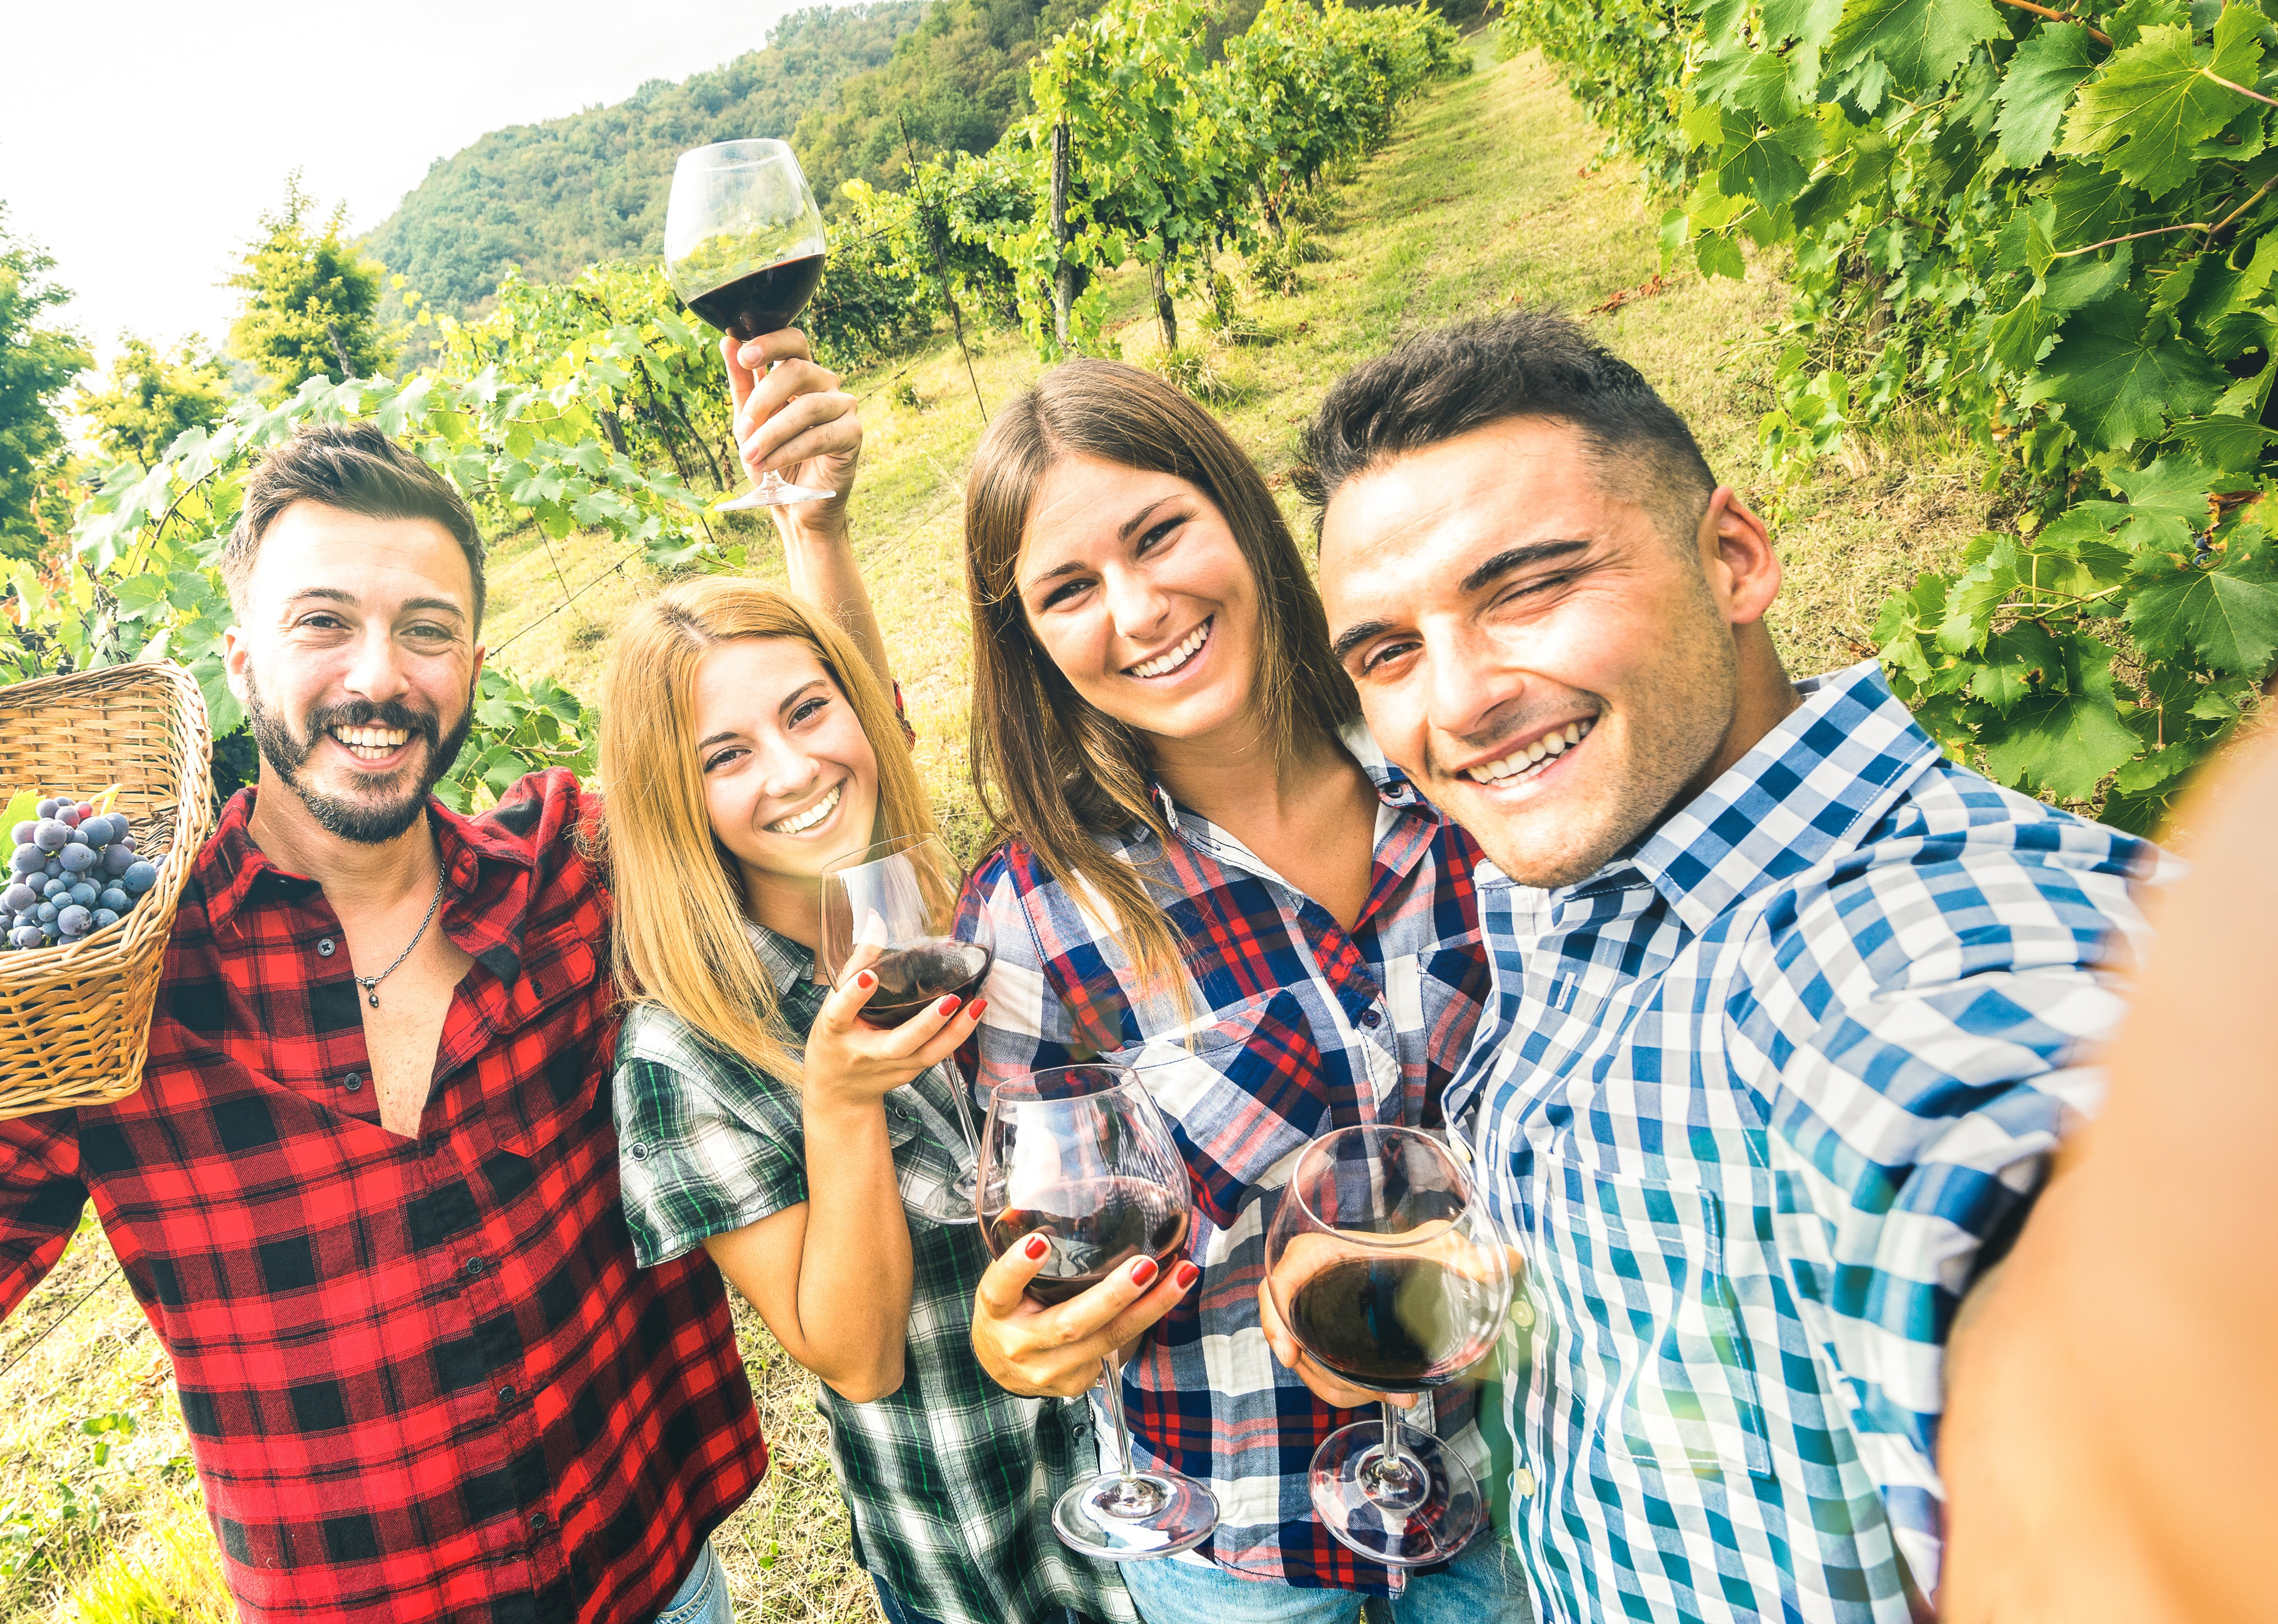 Young People in Vineyard Drinking Wine